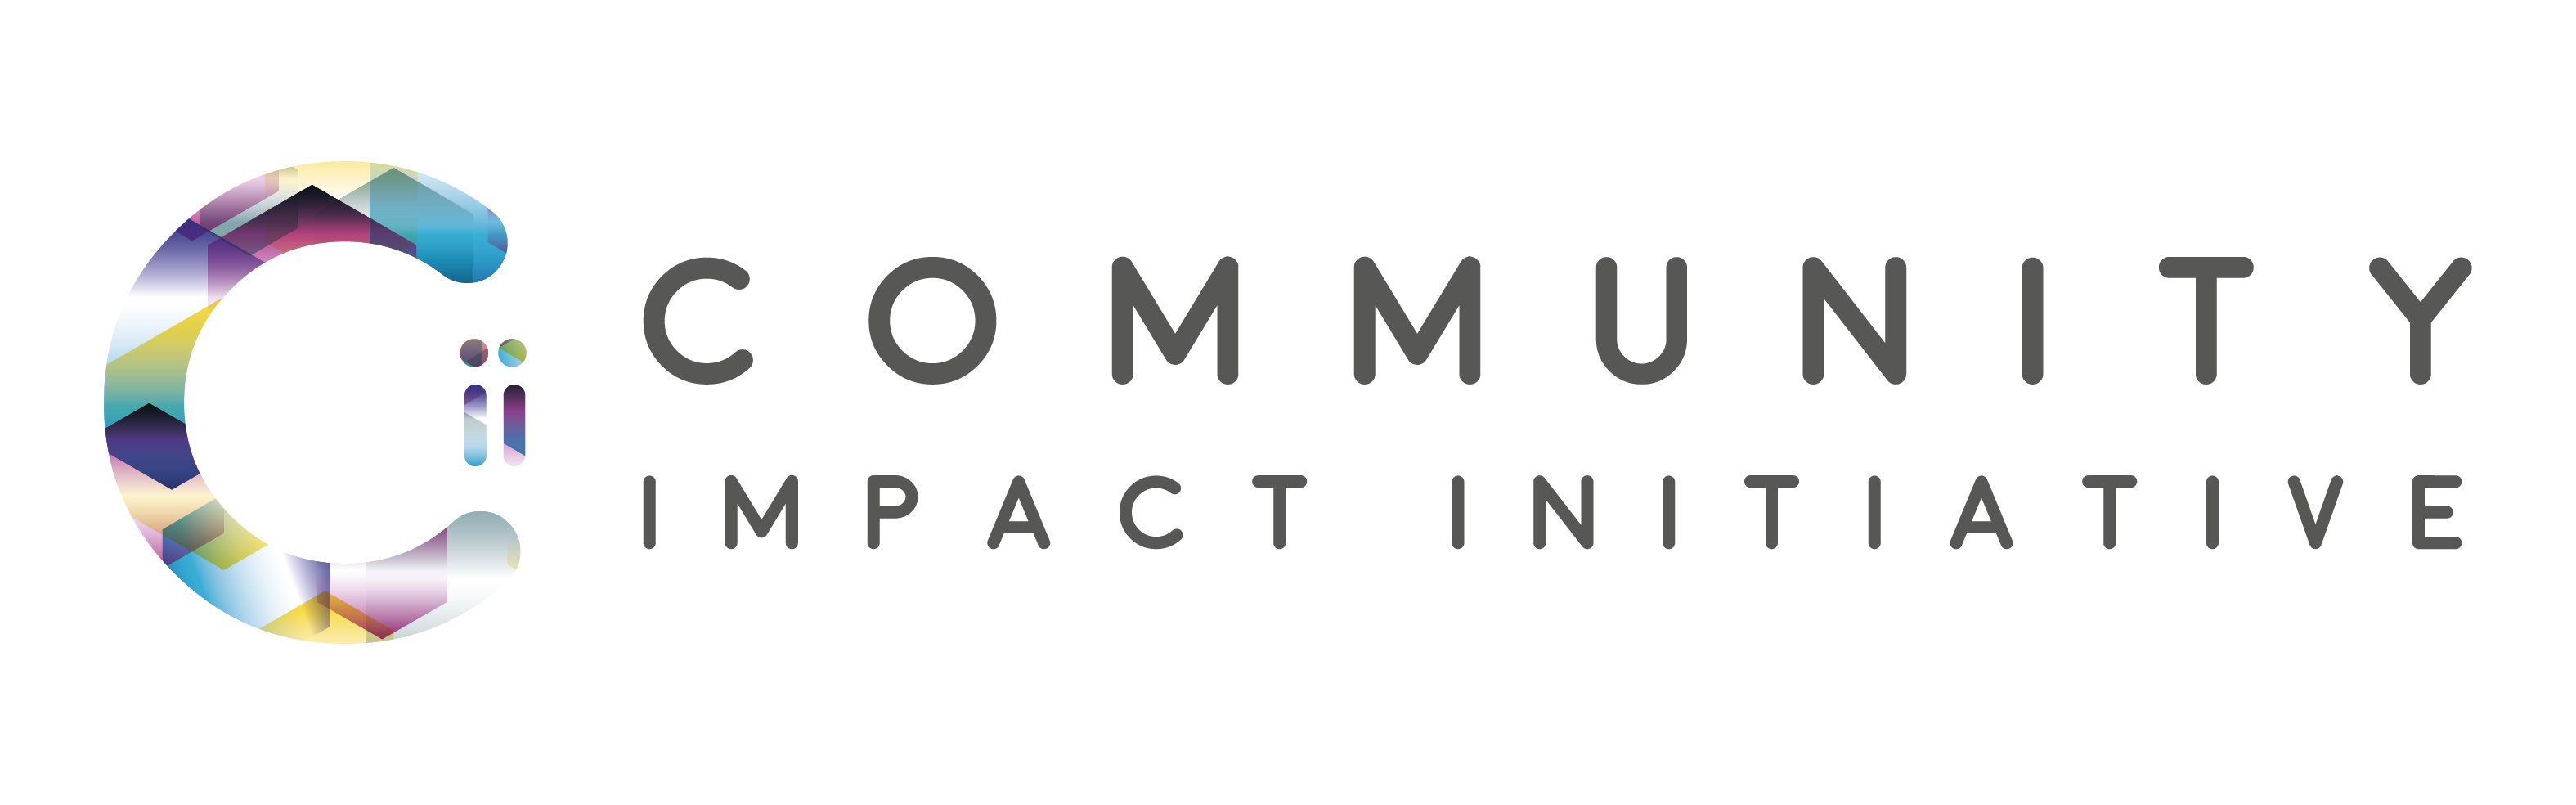 The Community Impact Initiative